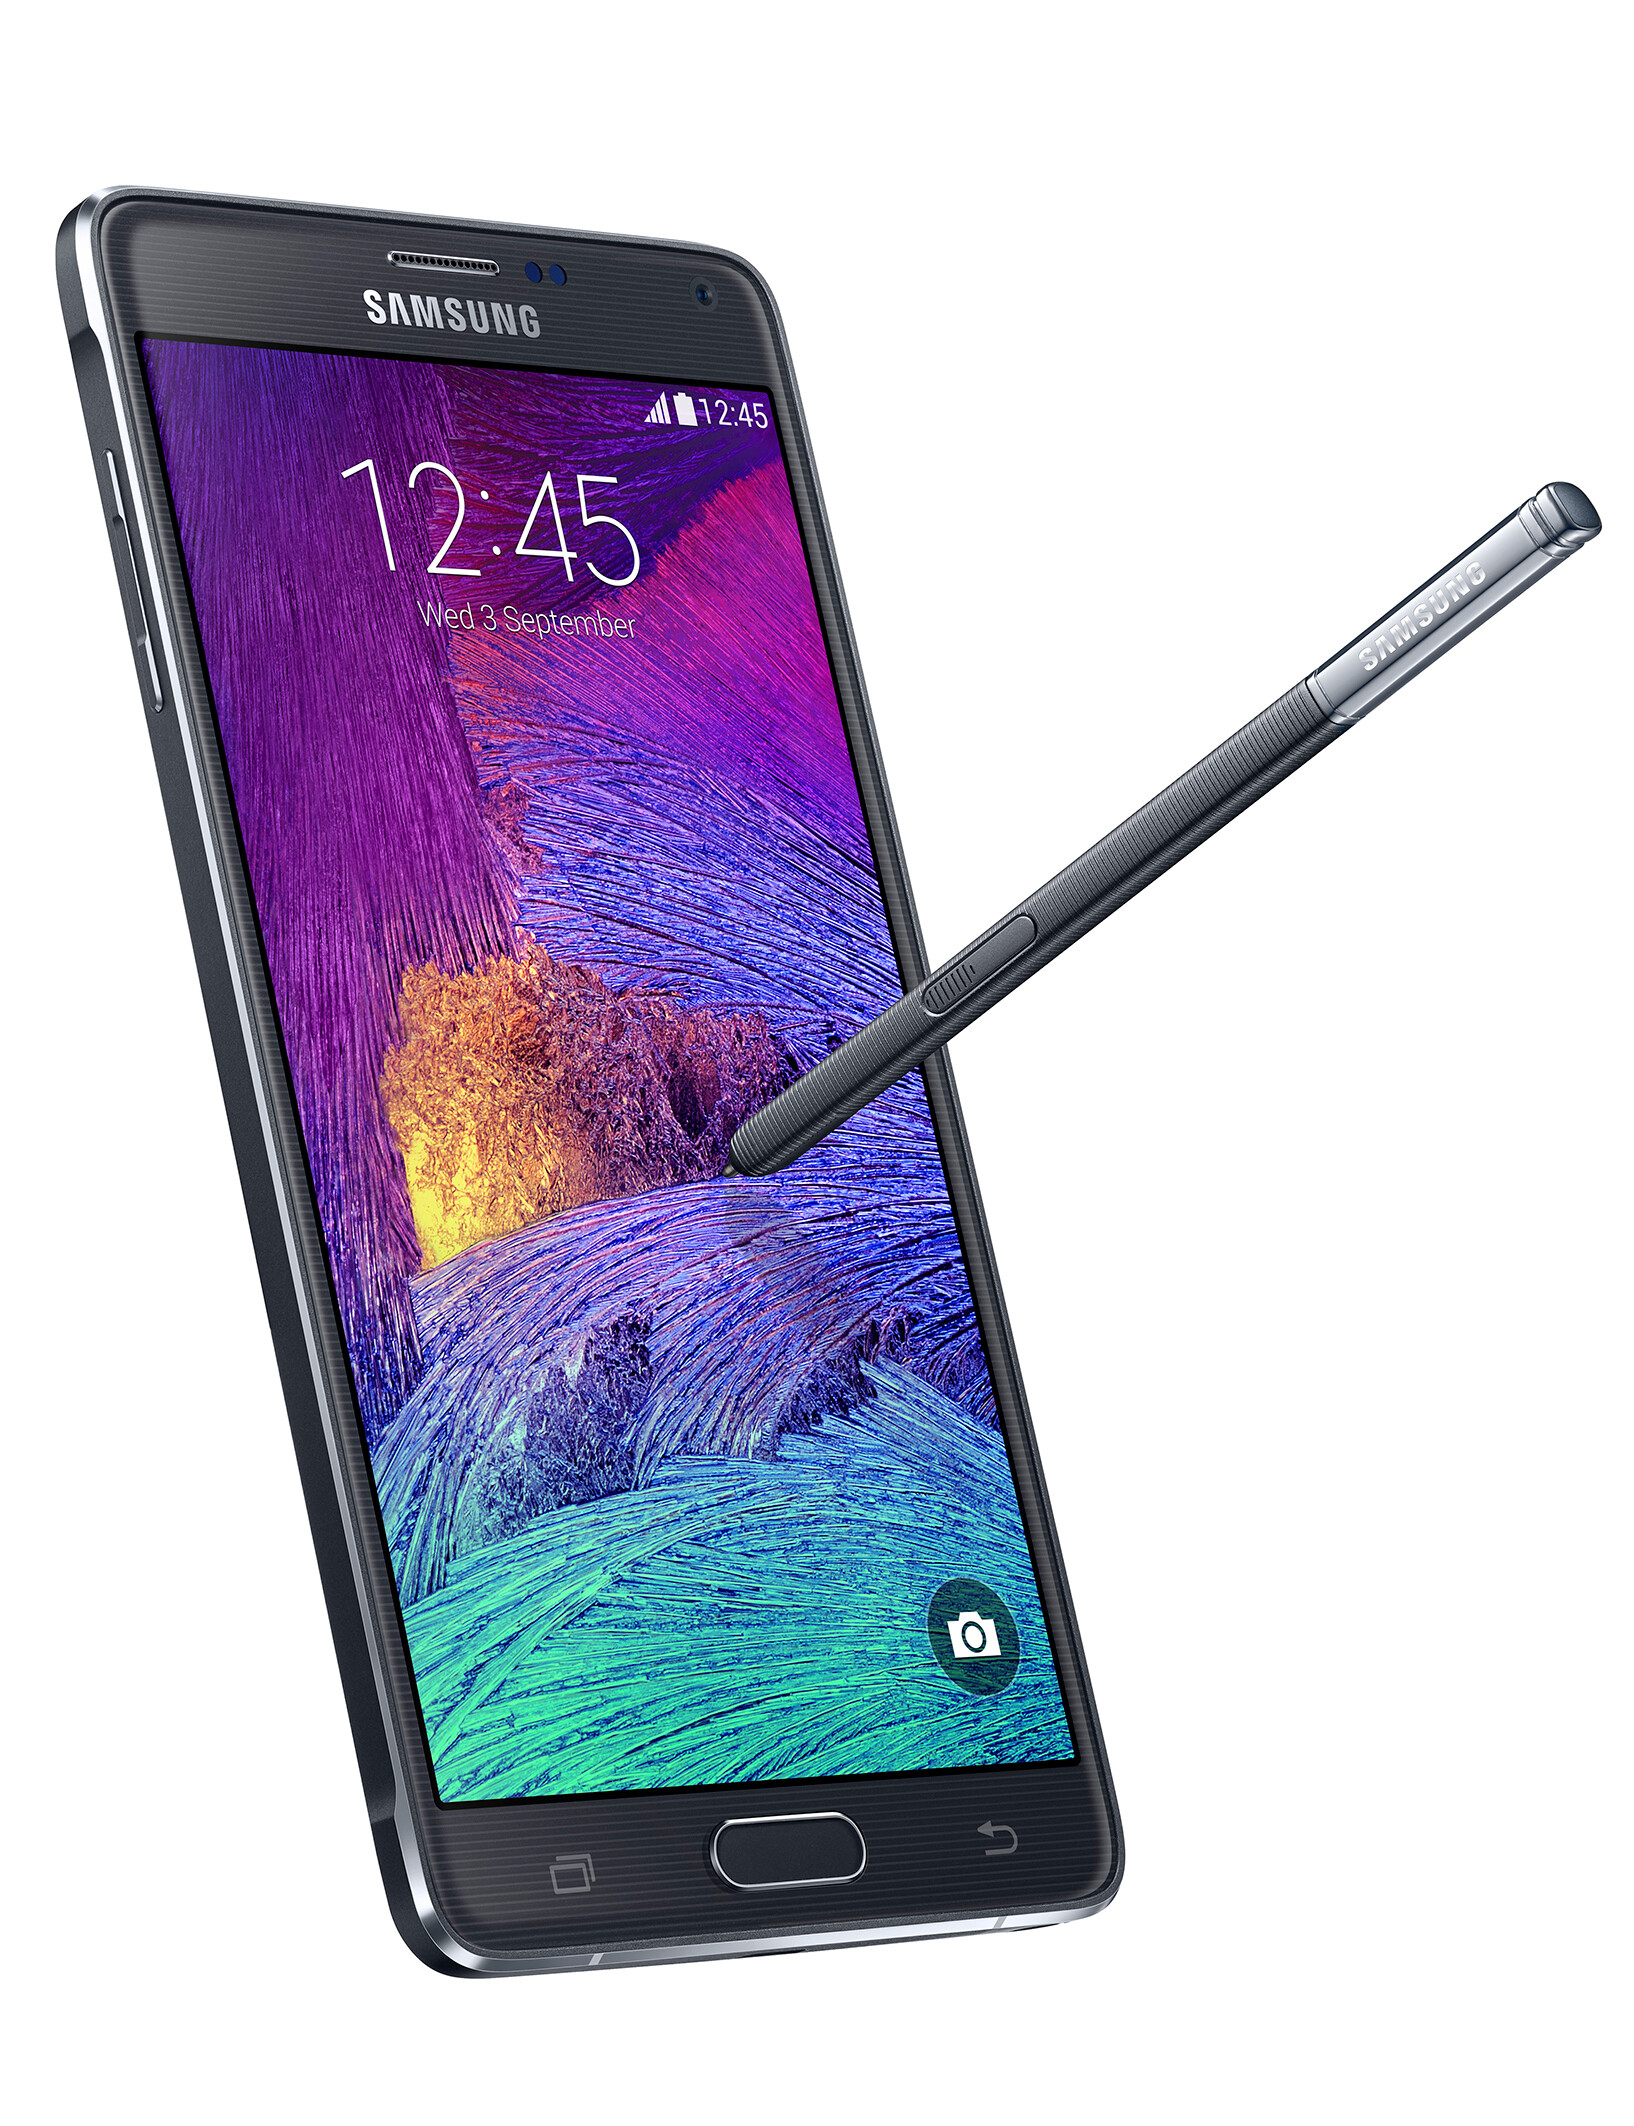 Samsung galaxy note 4 specs for Housse galaxy note 4